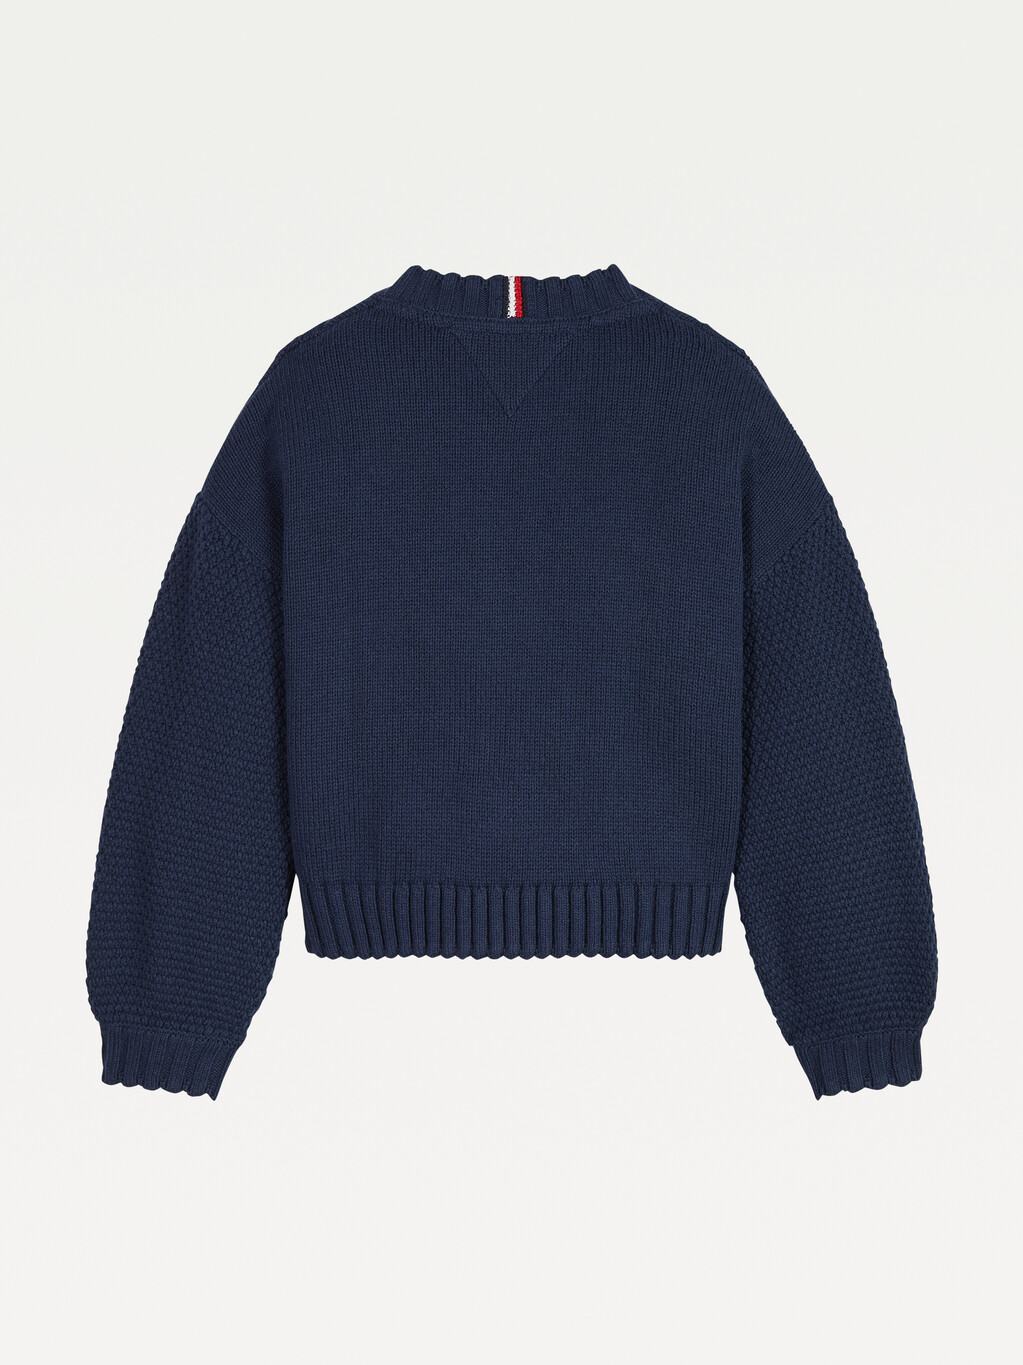 Signature Chunky Cable Knit Jumper